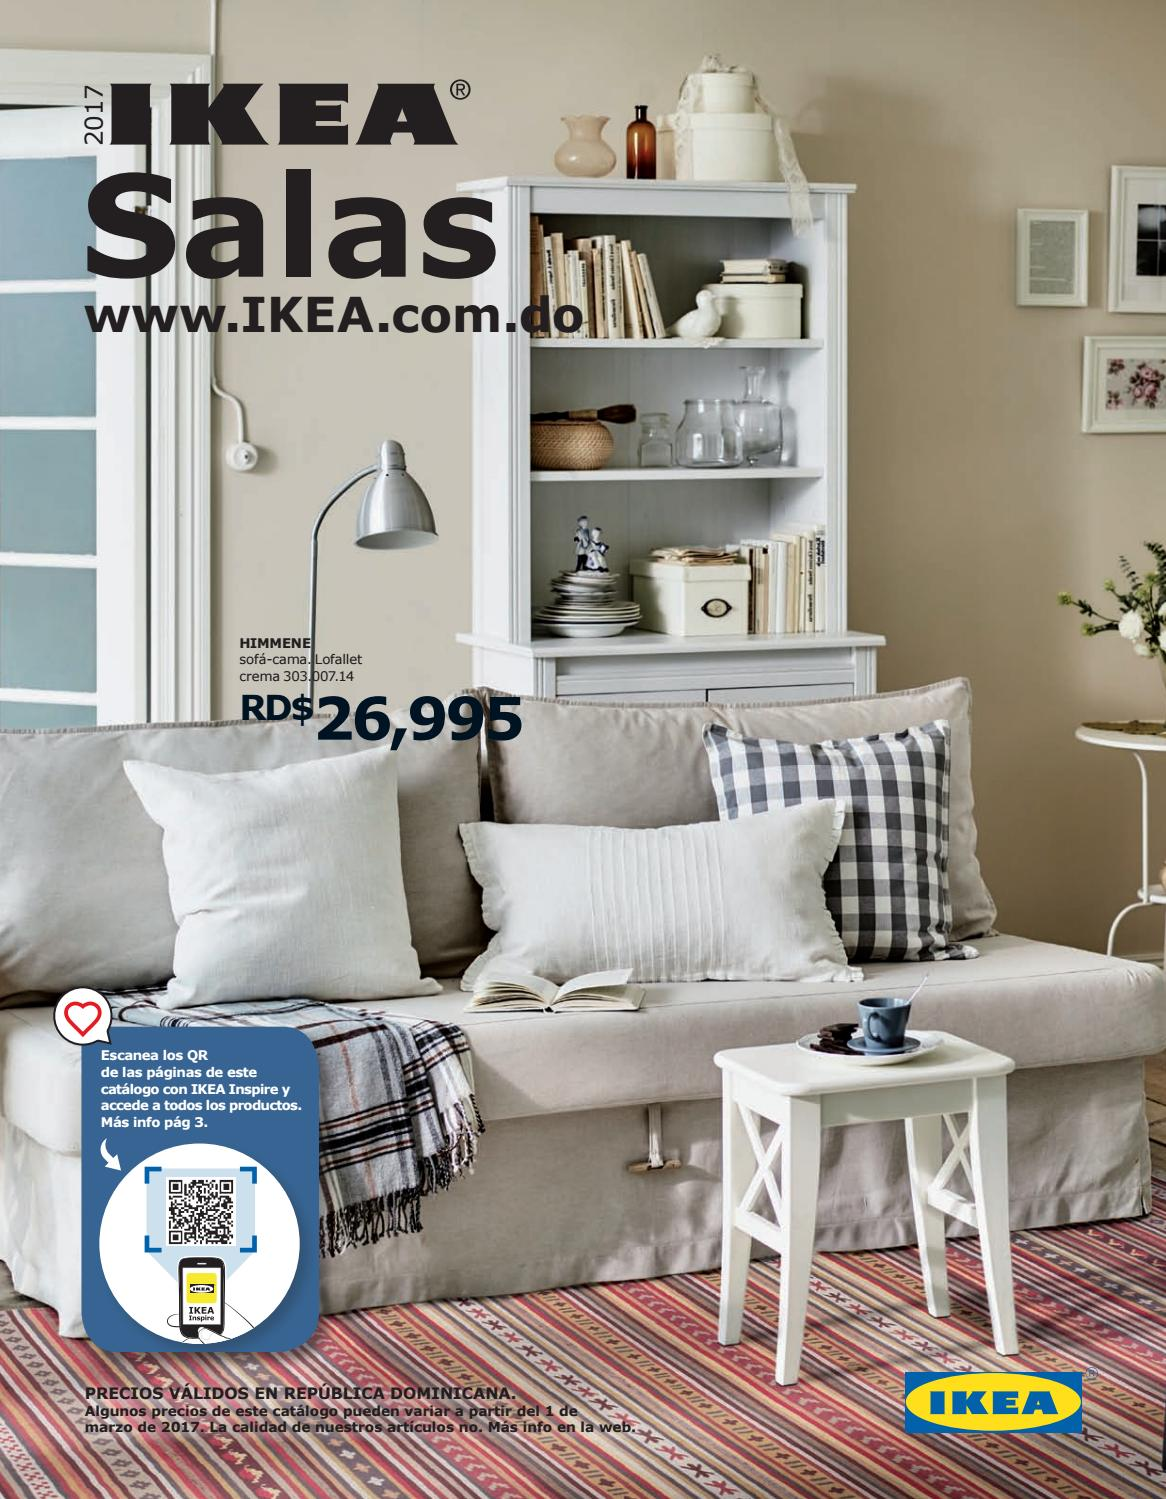 cat logo ikea salas 2017 rep blica dominicana by play809 issuu. Black Bedroom Furniture Sets. Home Design Ideas